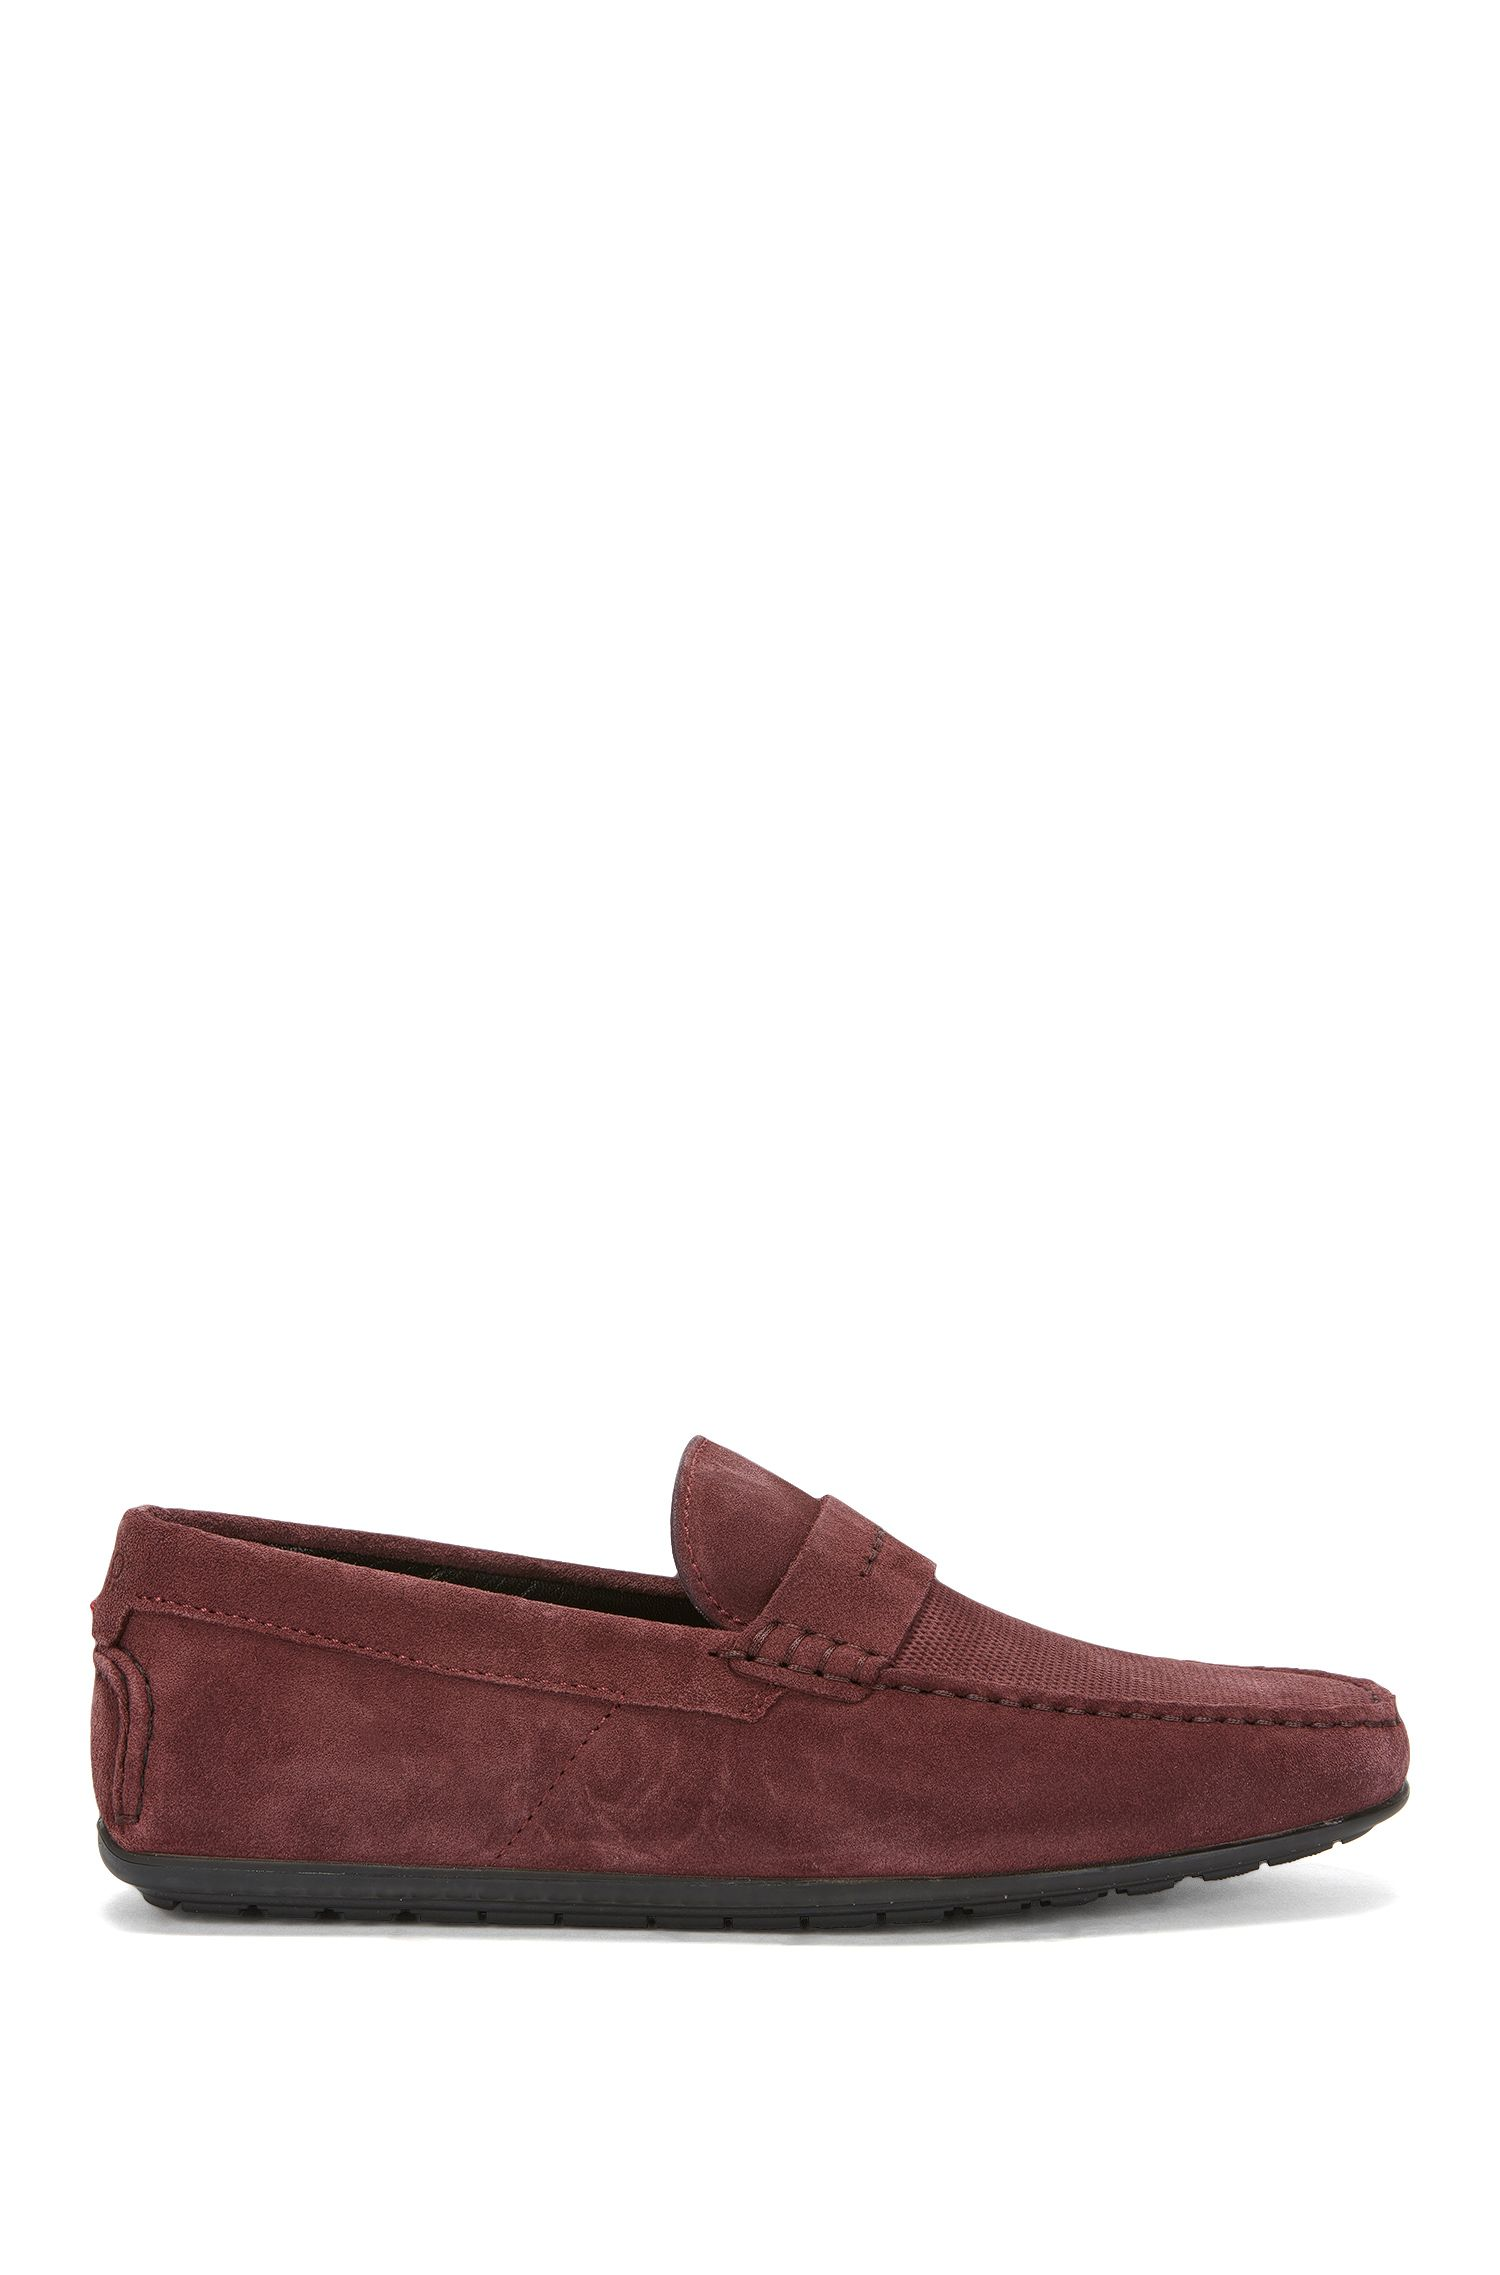 Suede moccasins with perforated front: 'Dandy_Mocc_sdpr'